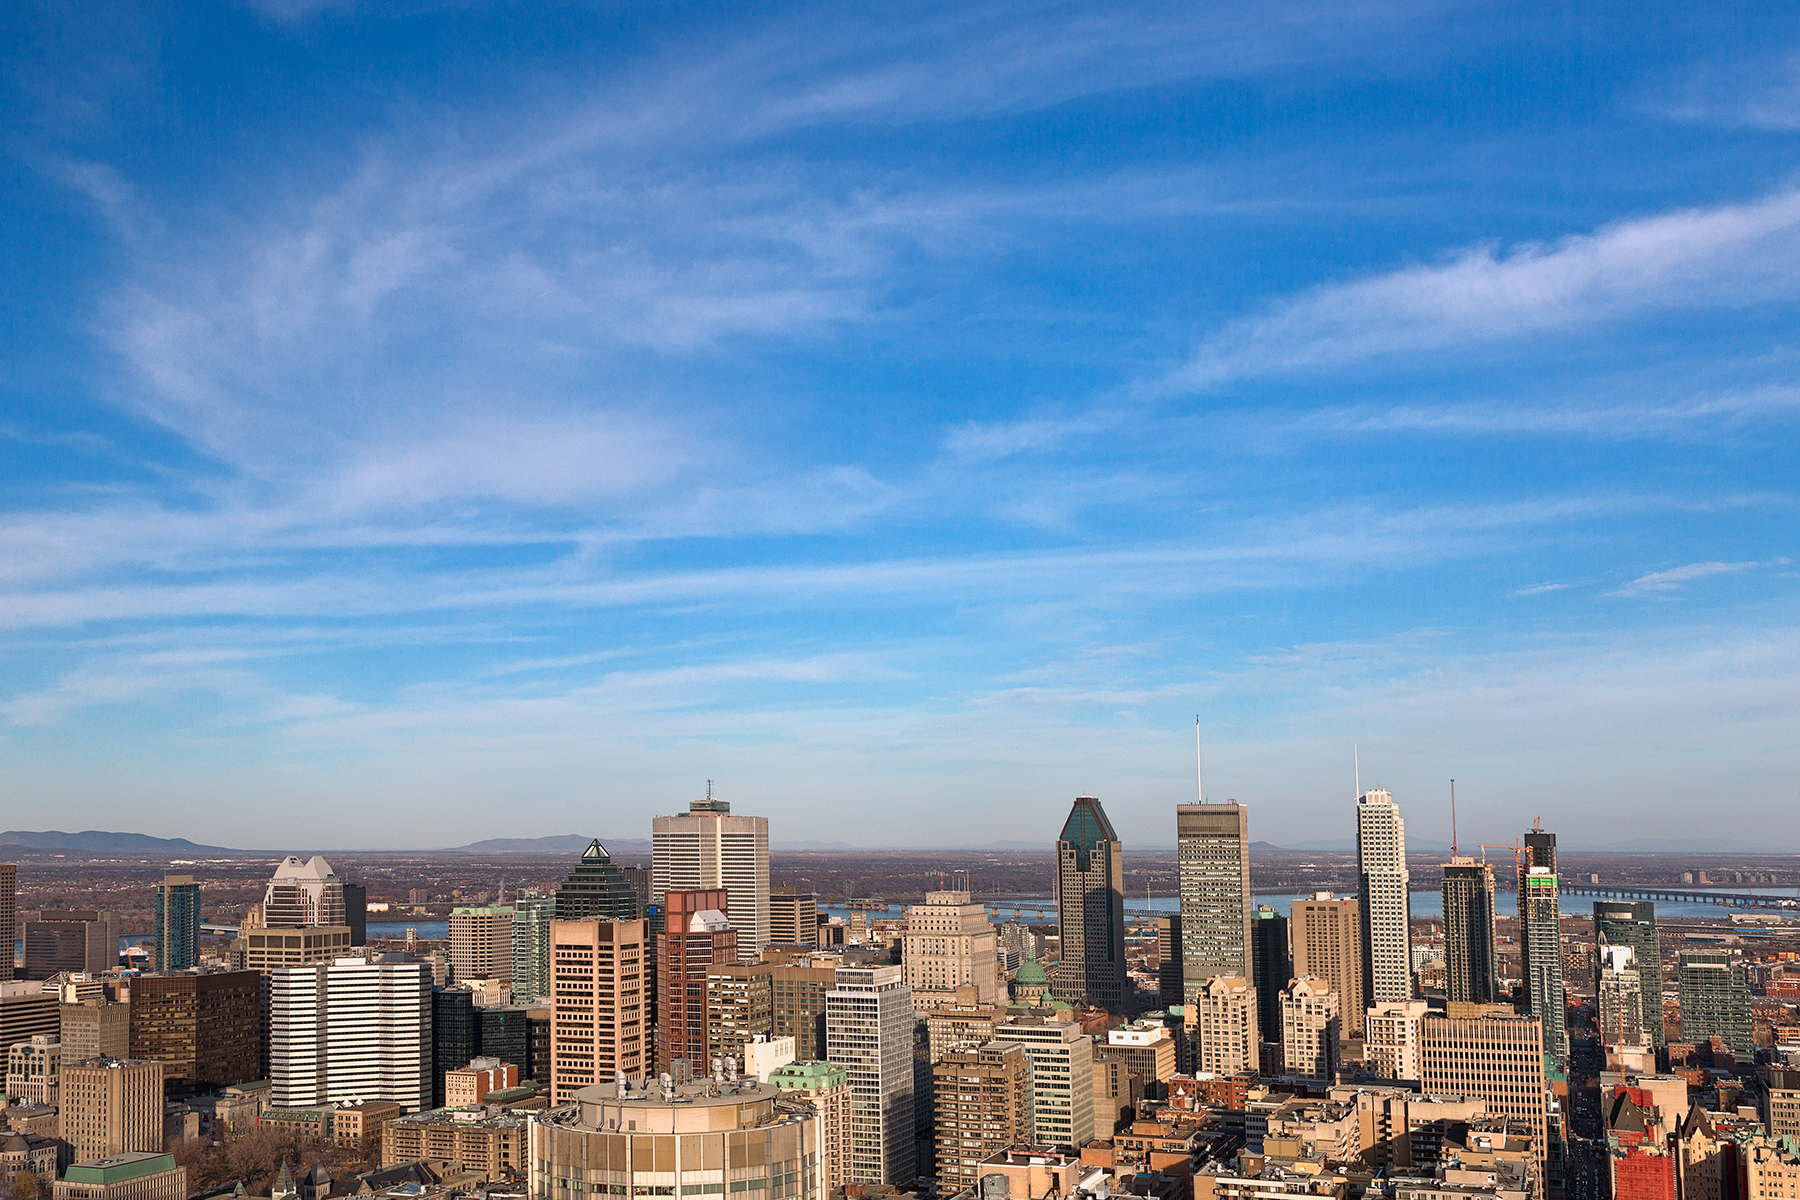 Montreal skyline - hdr photo